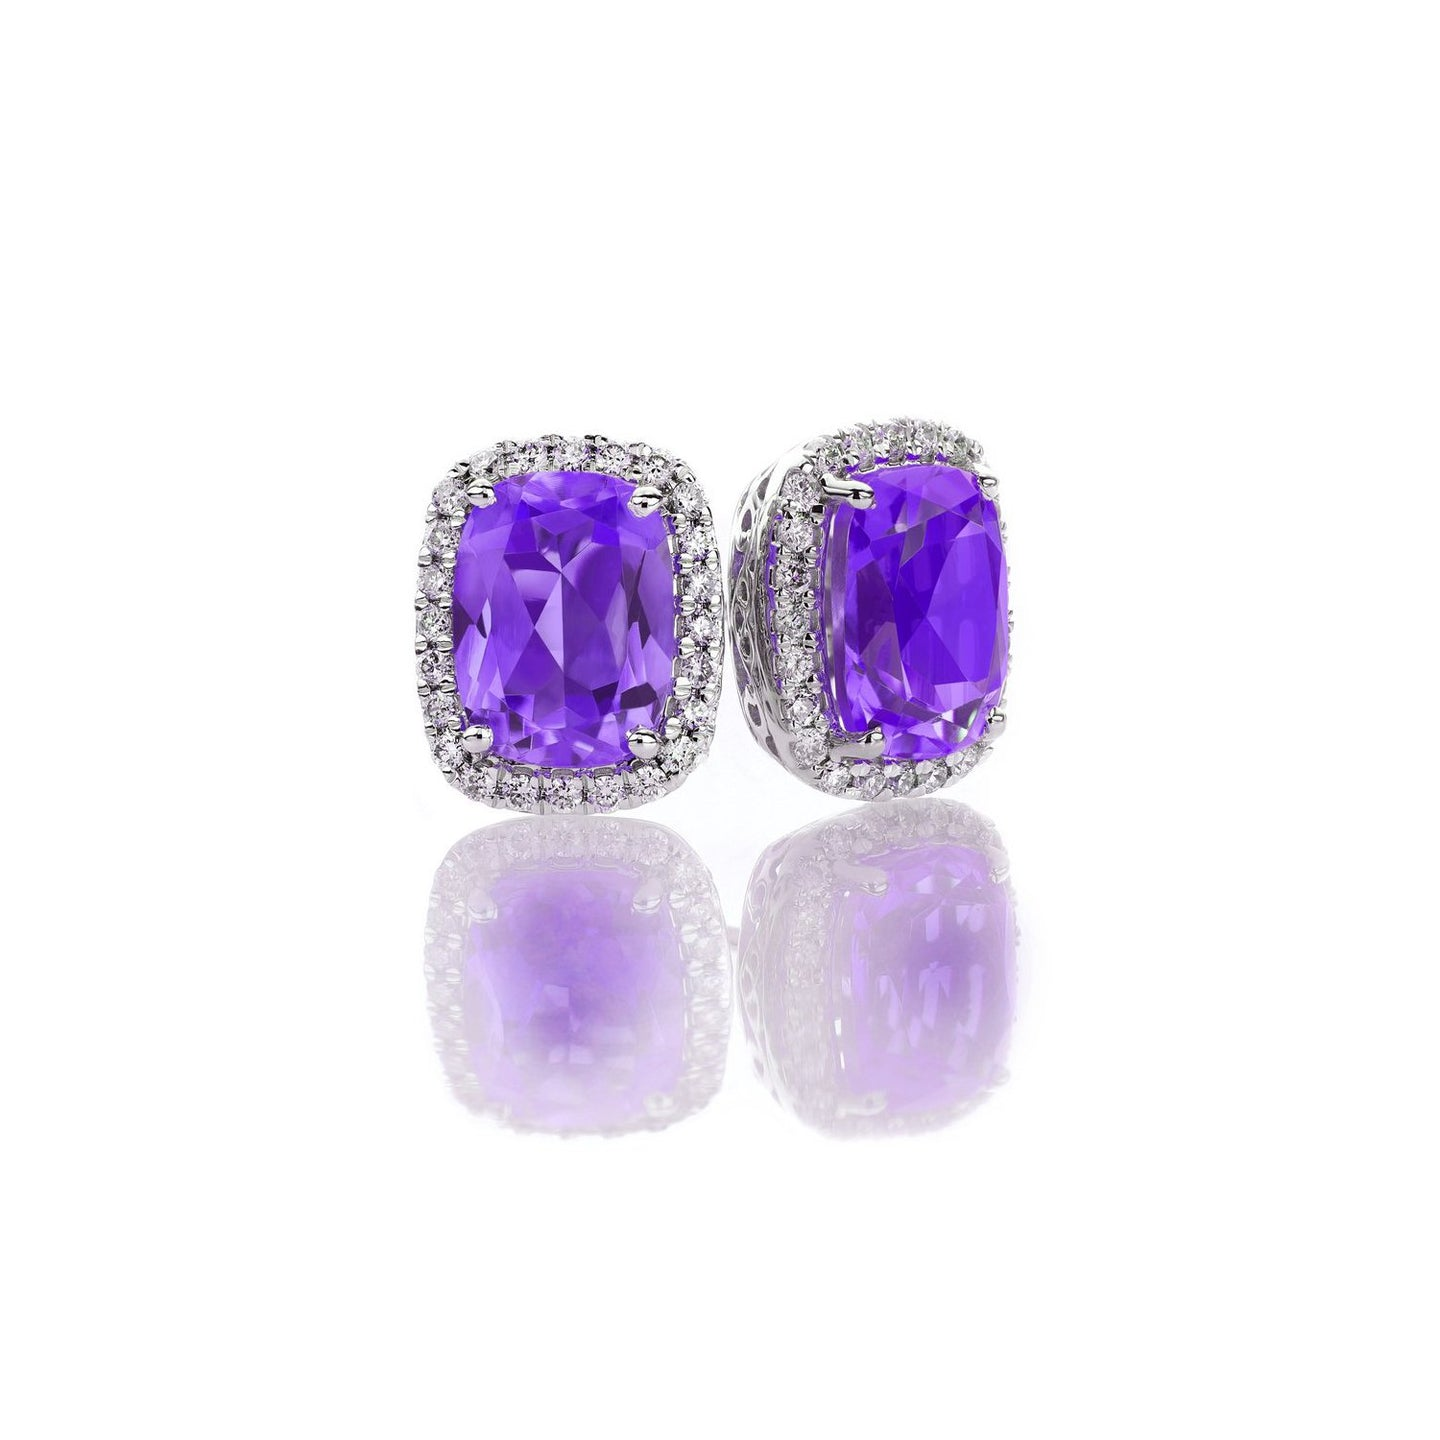 Sabel Collection 14K White Gold Cushion Cut Amethyst and Diamond Earrings